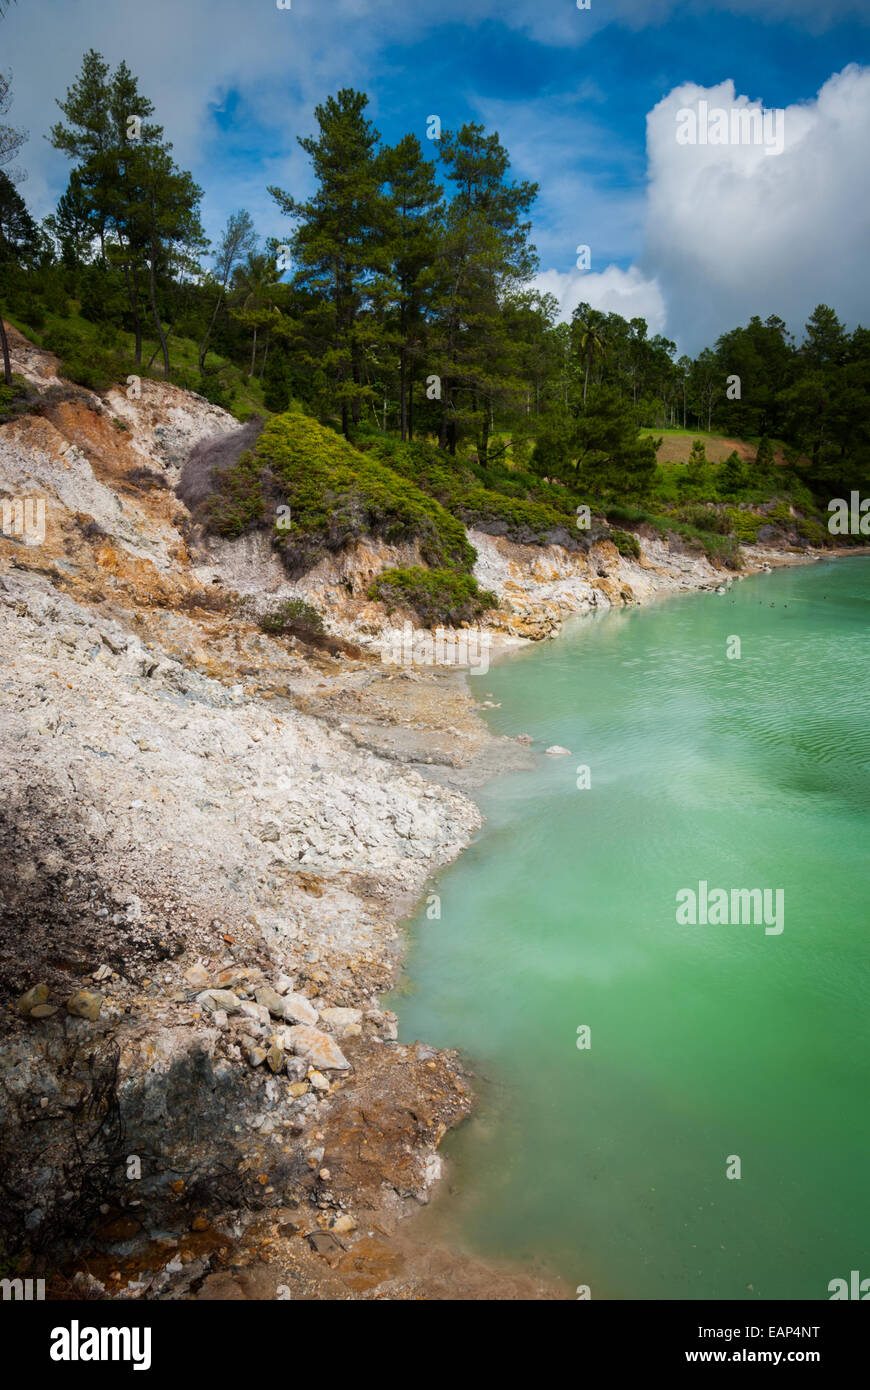 Linow Lake, a water-filled volcanic crater in North Sulawesi, Indonesia. - Stock Image